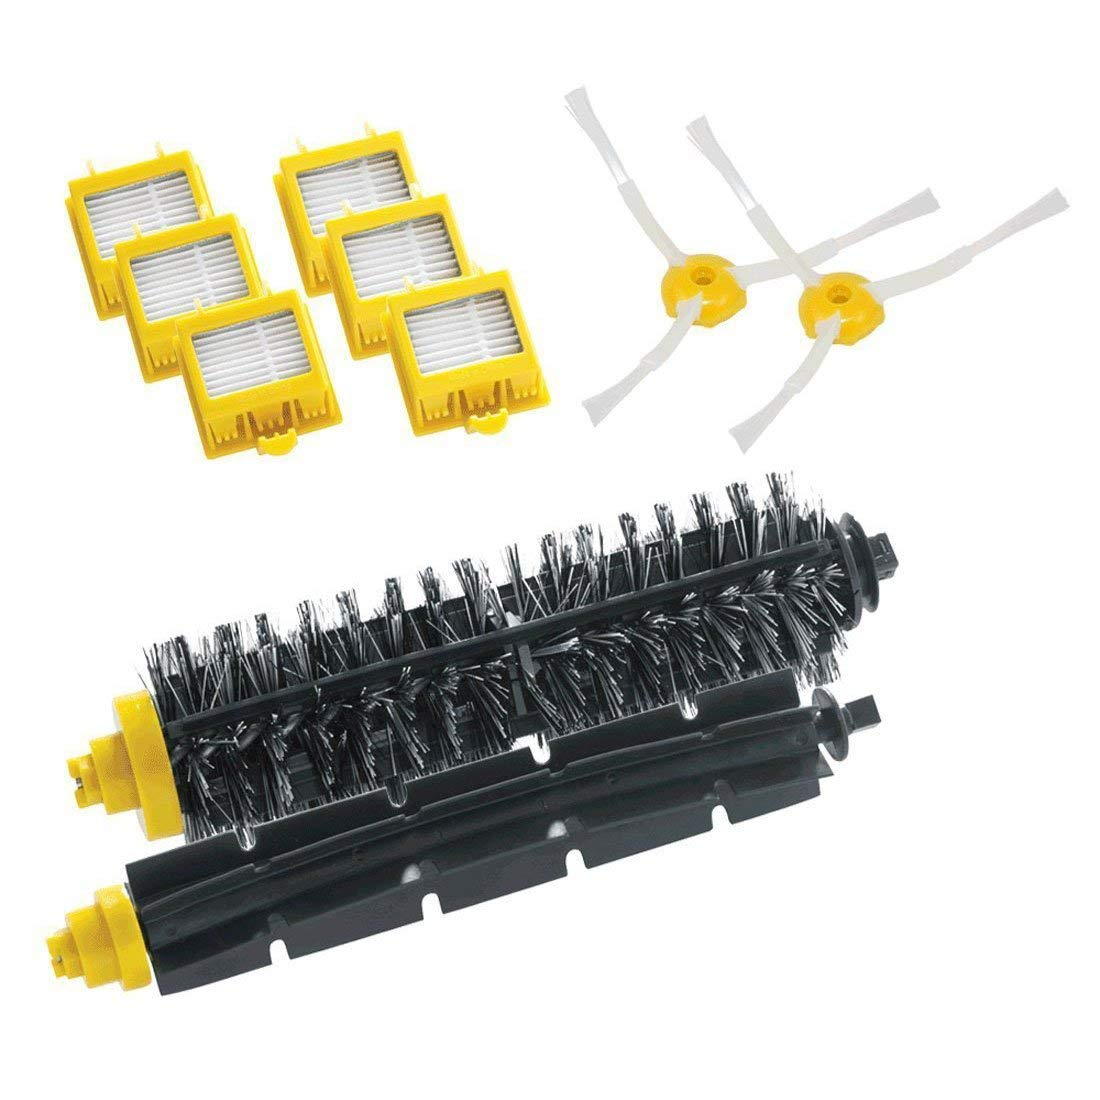 SODIAL Vacuum cleaner accessories, sweeping robot accessories